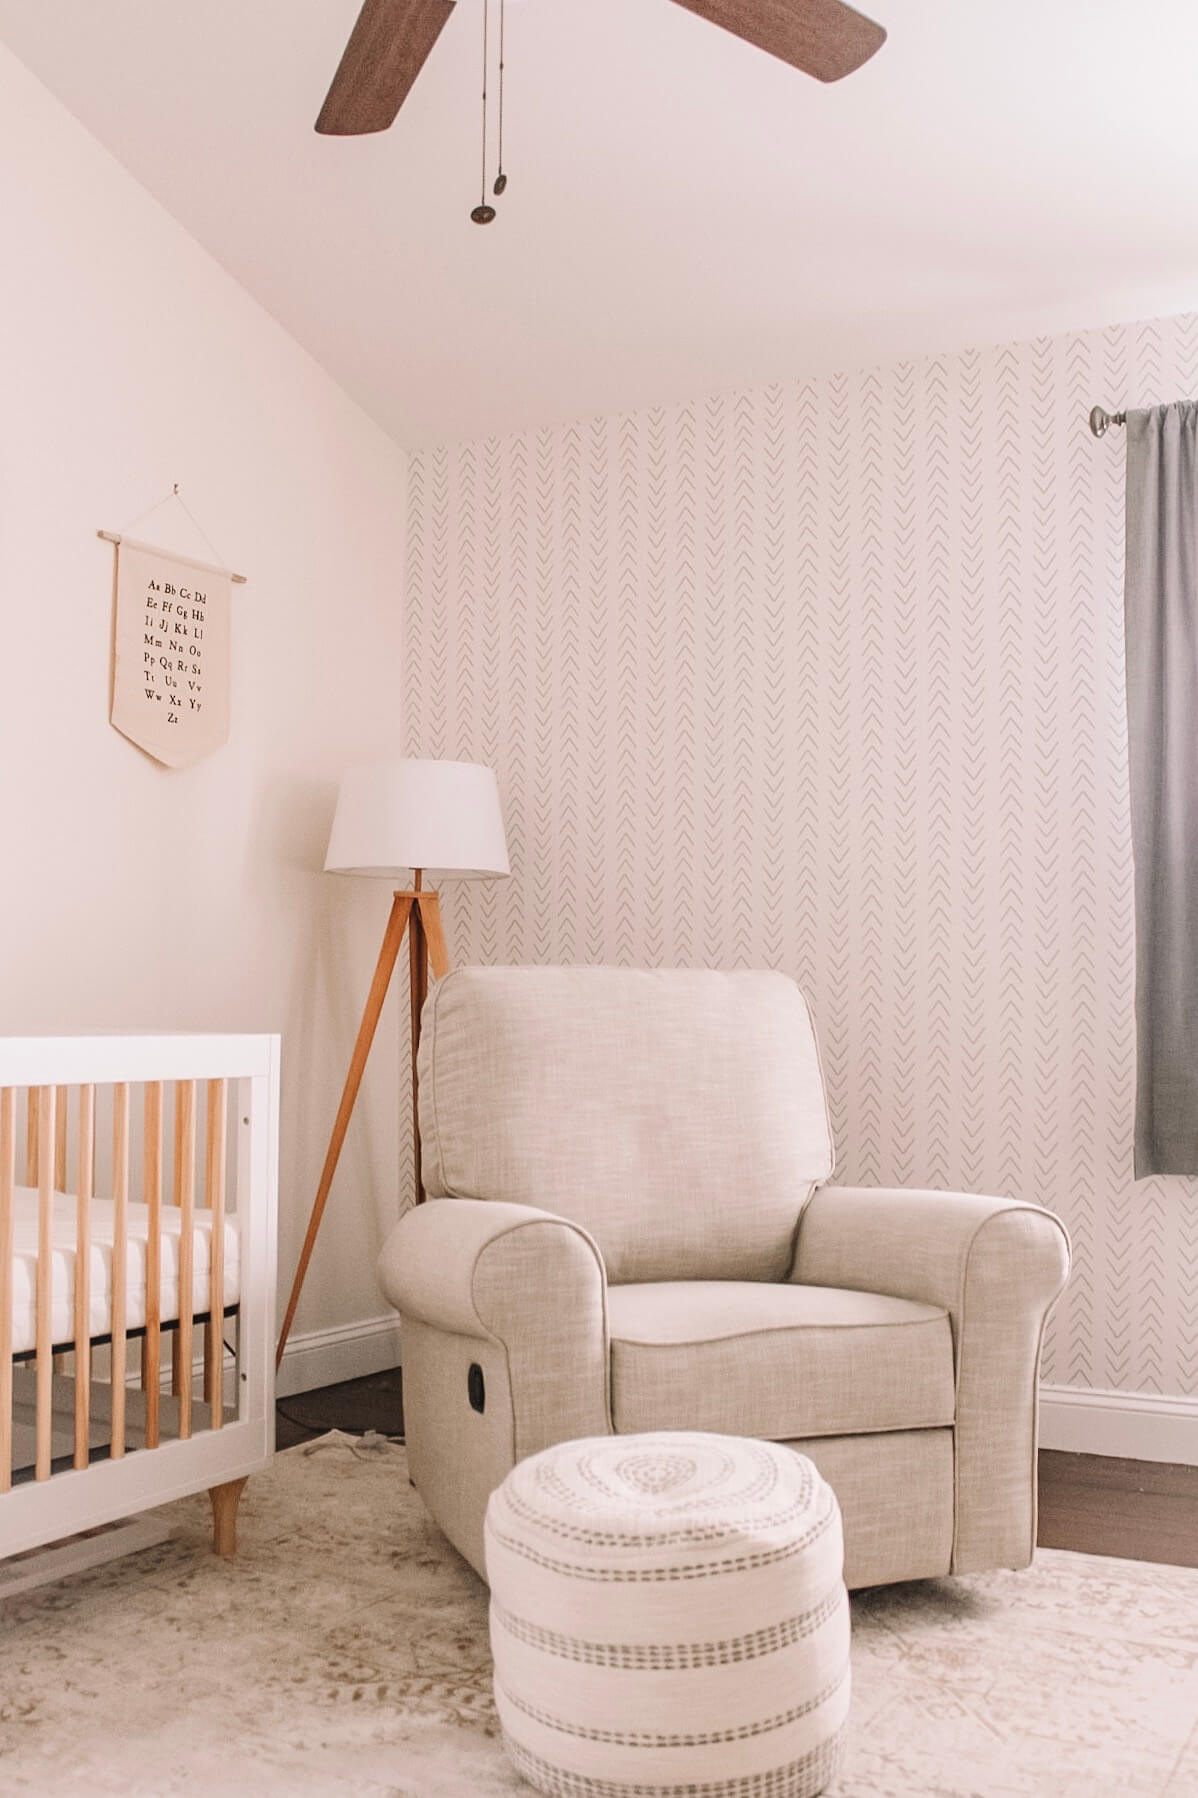 Gender neutral nursery with minimal design removable wallpaper